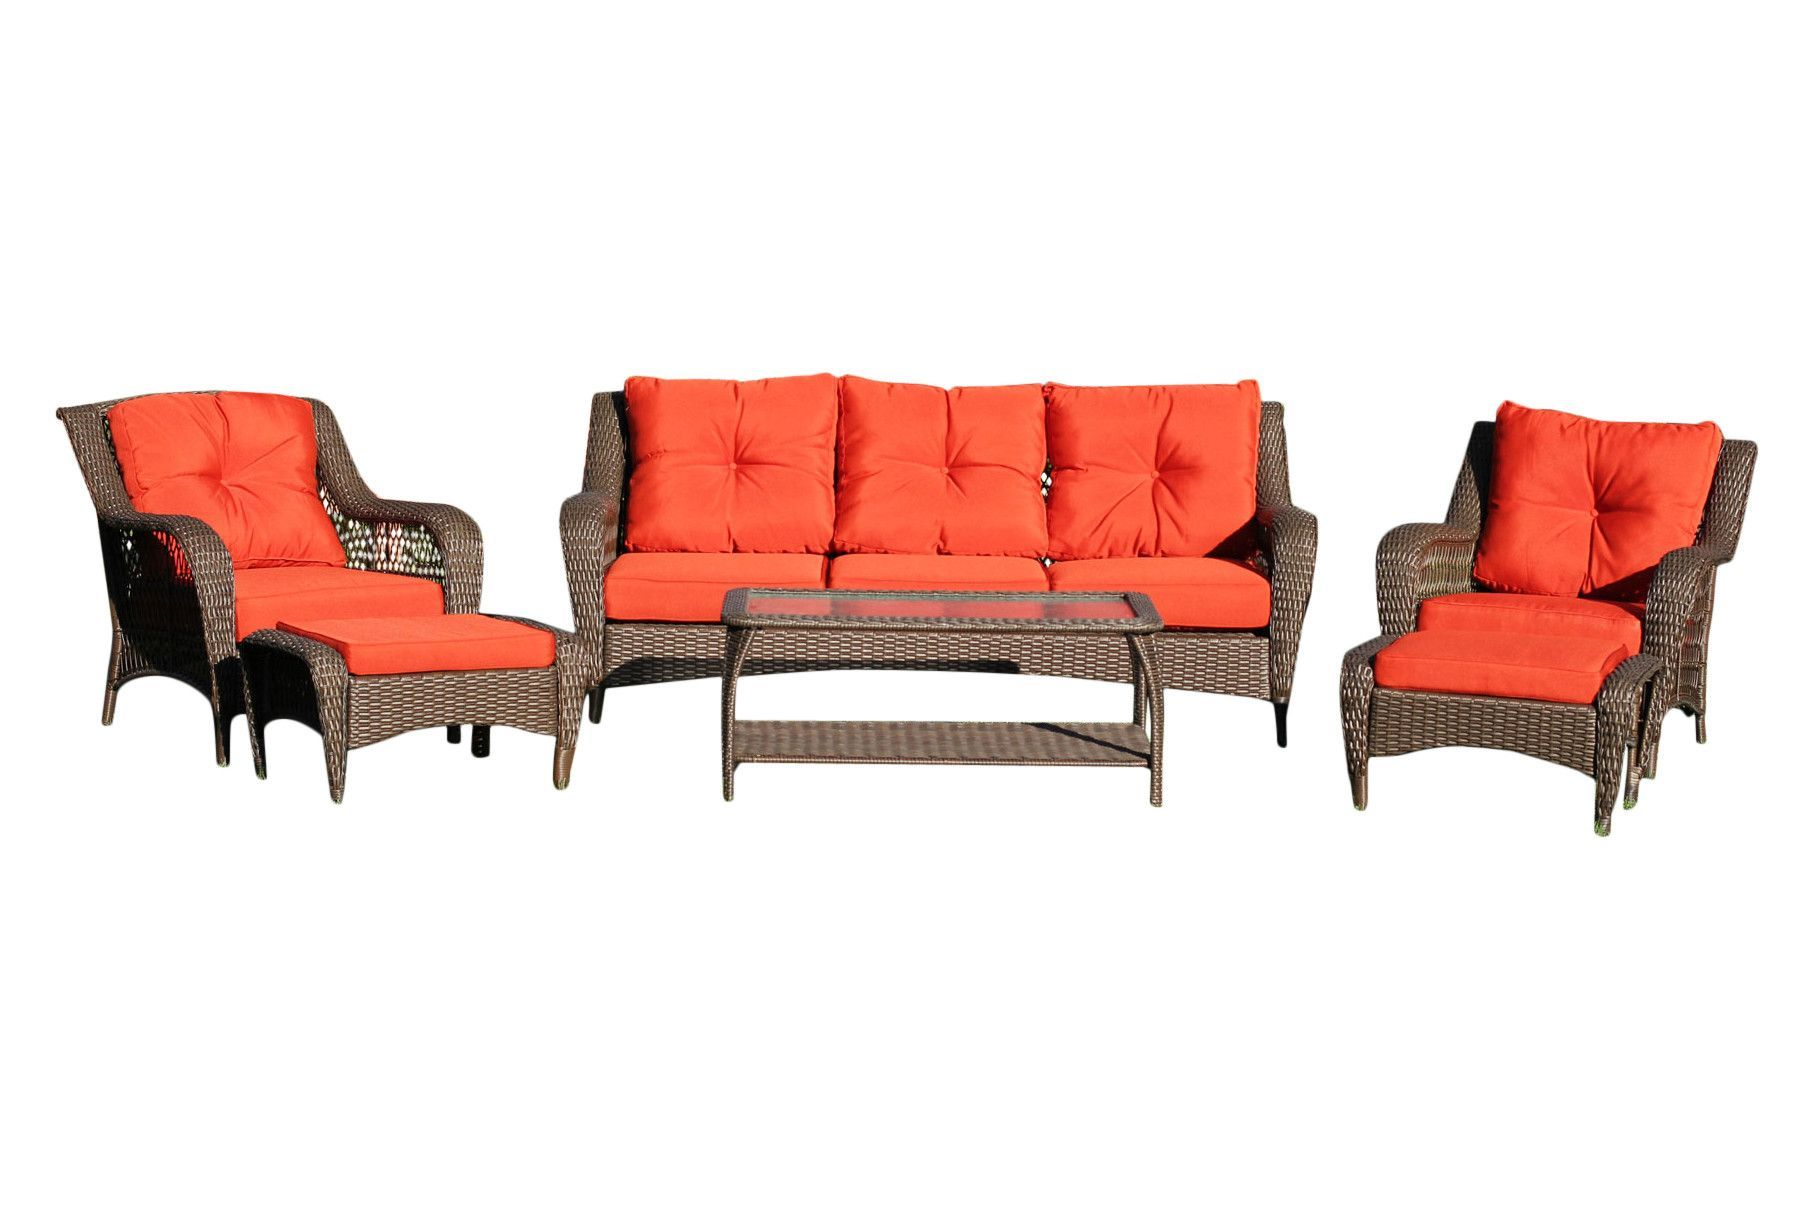 6 Piece Wicker Seating Group With Red